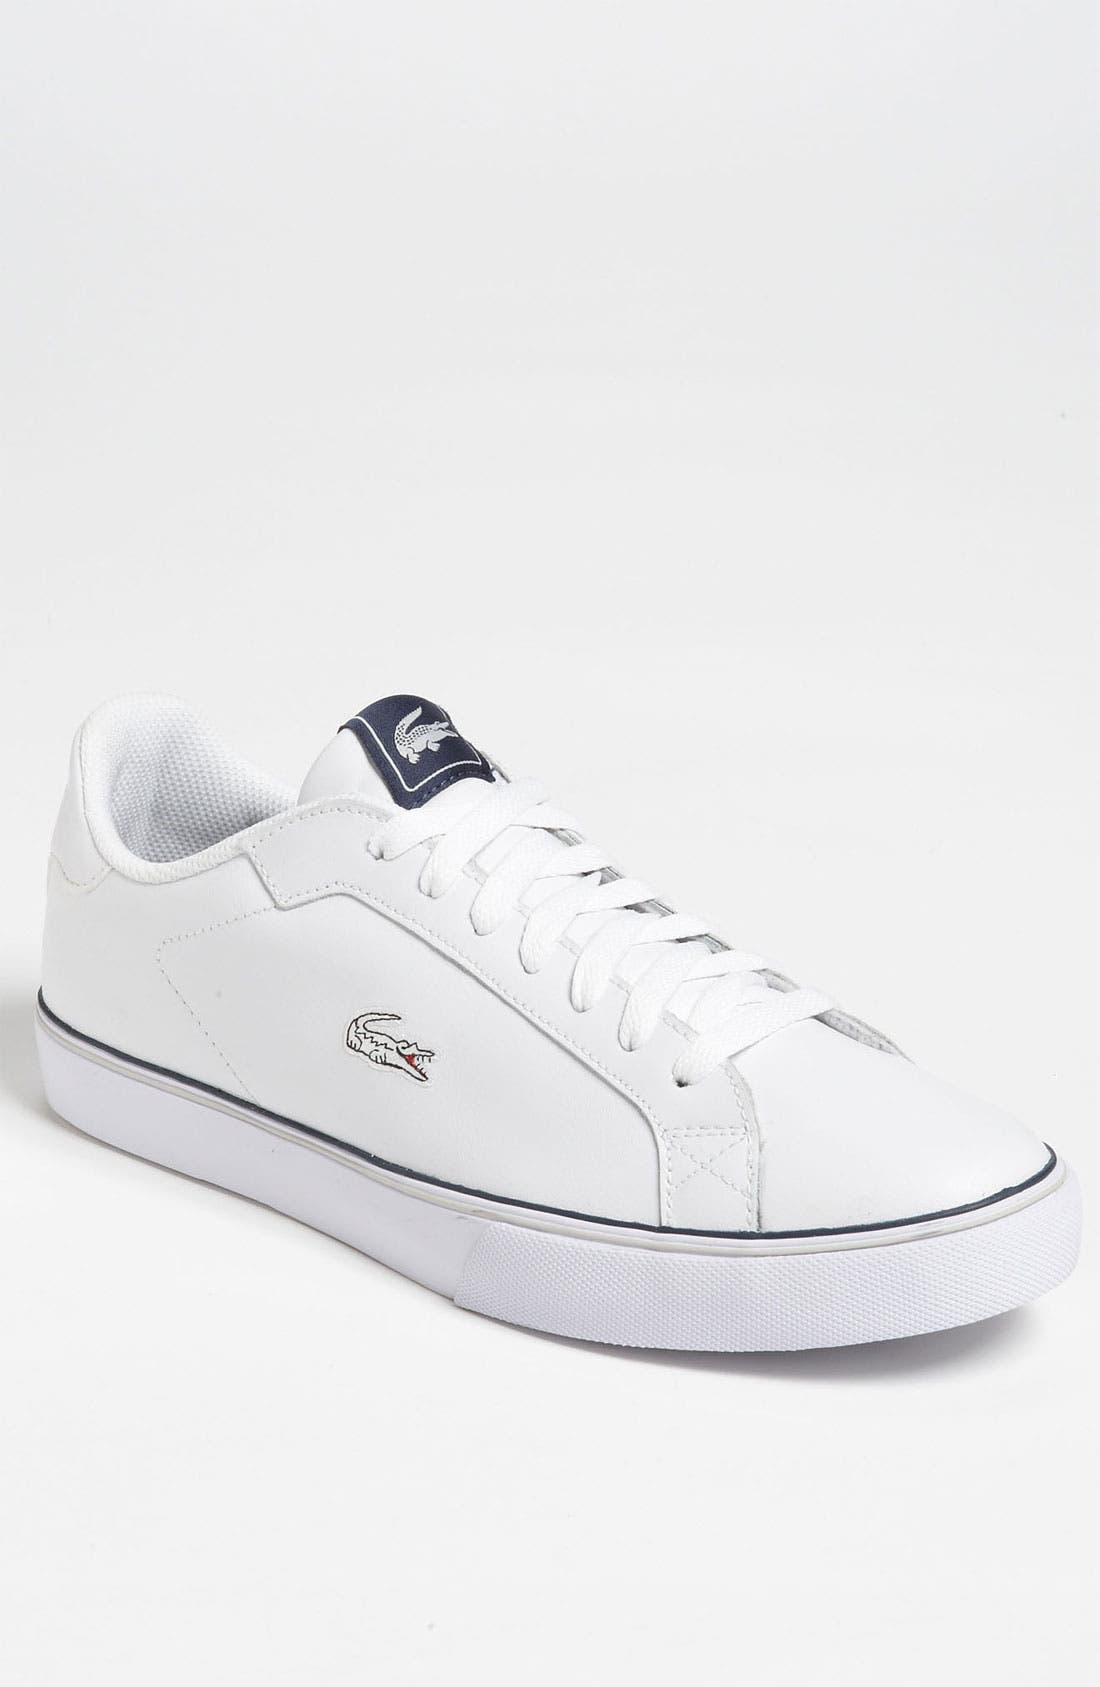 Main Image - Lacoste 'Marlinglow' Sneaker (Men)